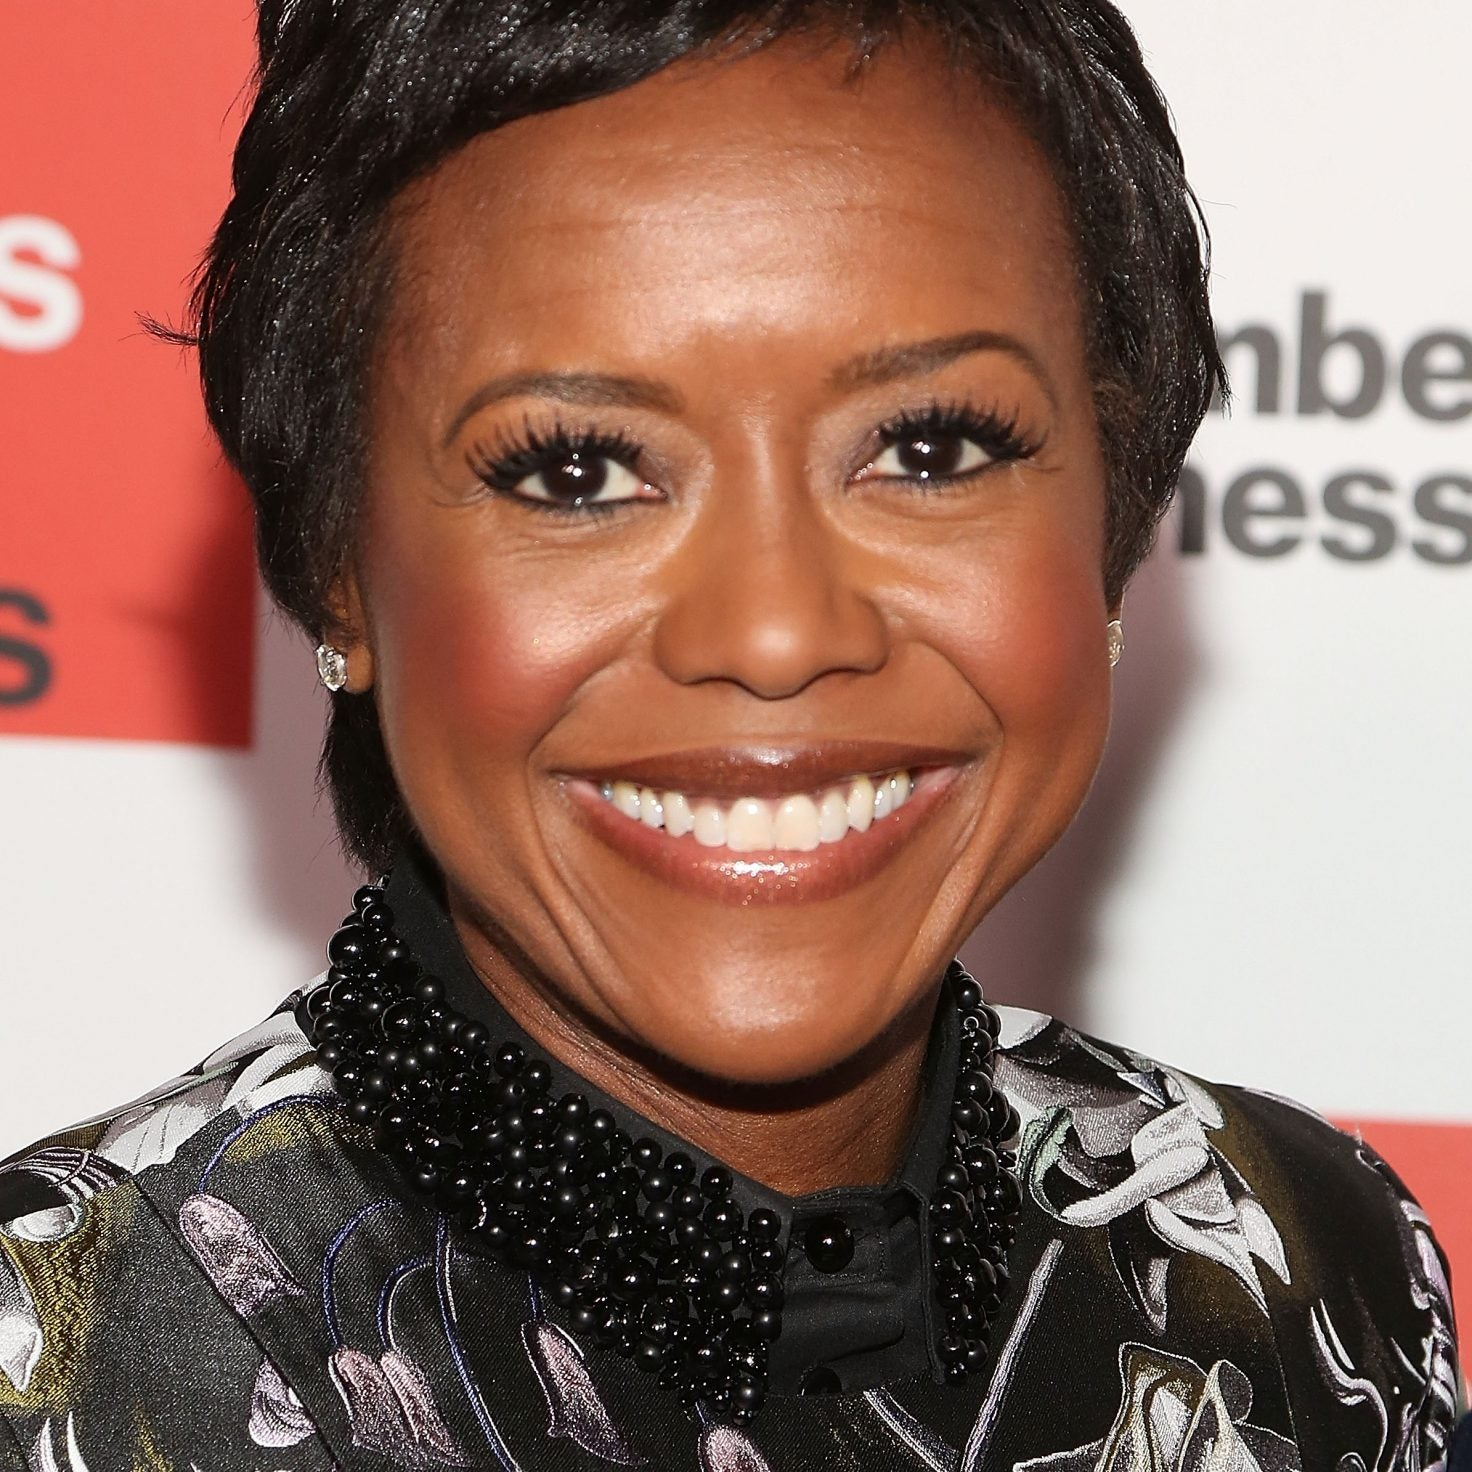 Mellody Hobson Makes History As First Black Woman To Have Princeton Residential College In Her Name